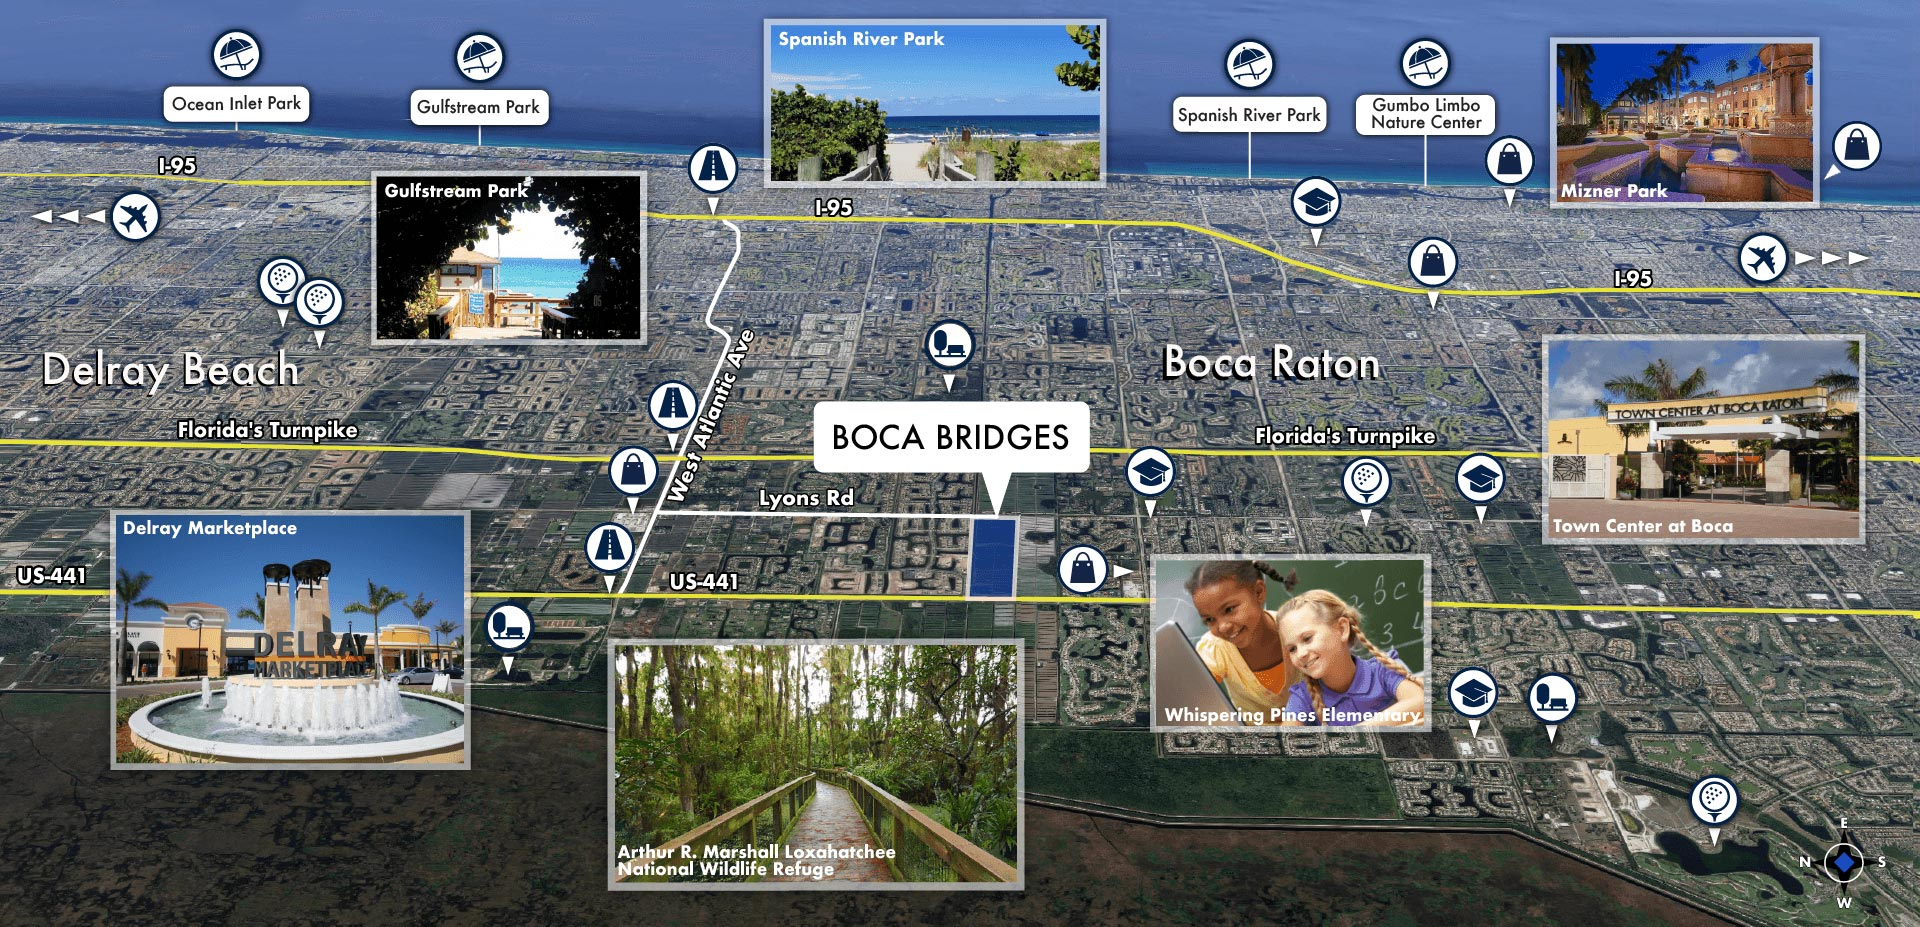 Boca Bridges Area Map